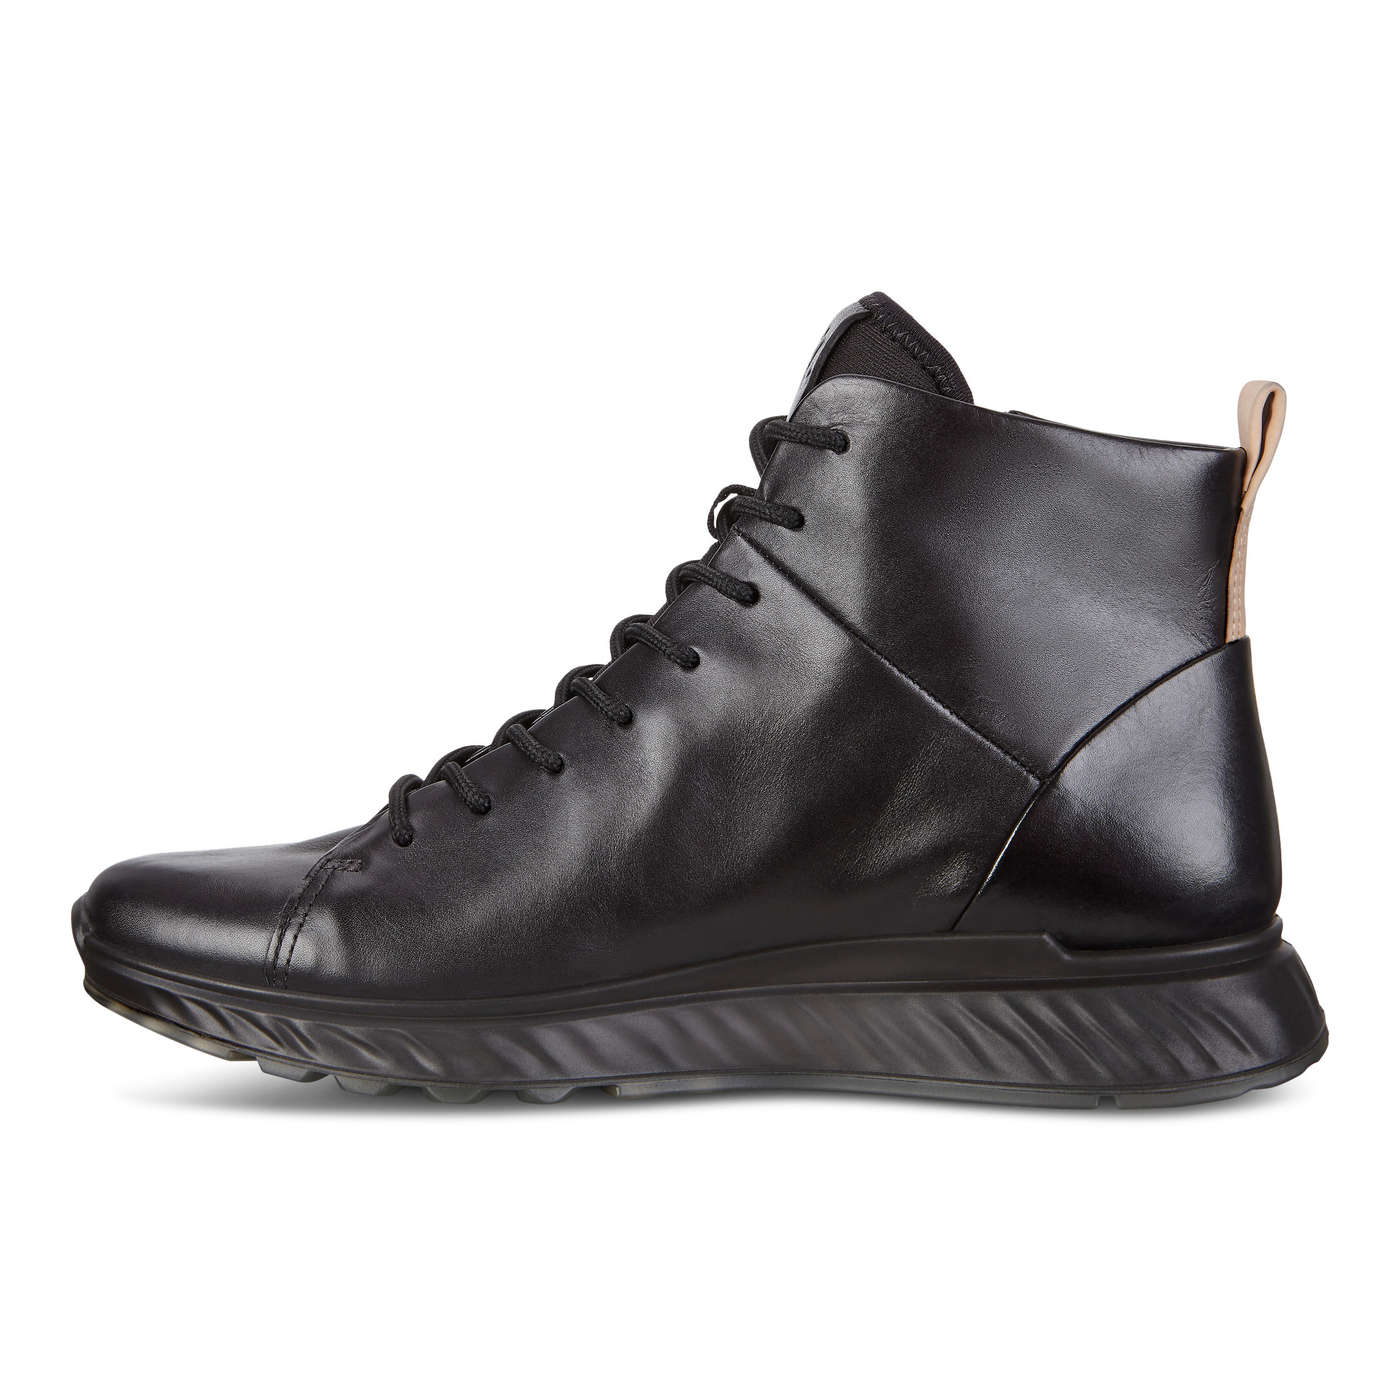 ECCO Mens ST1 High Top